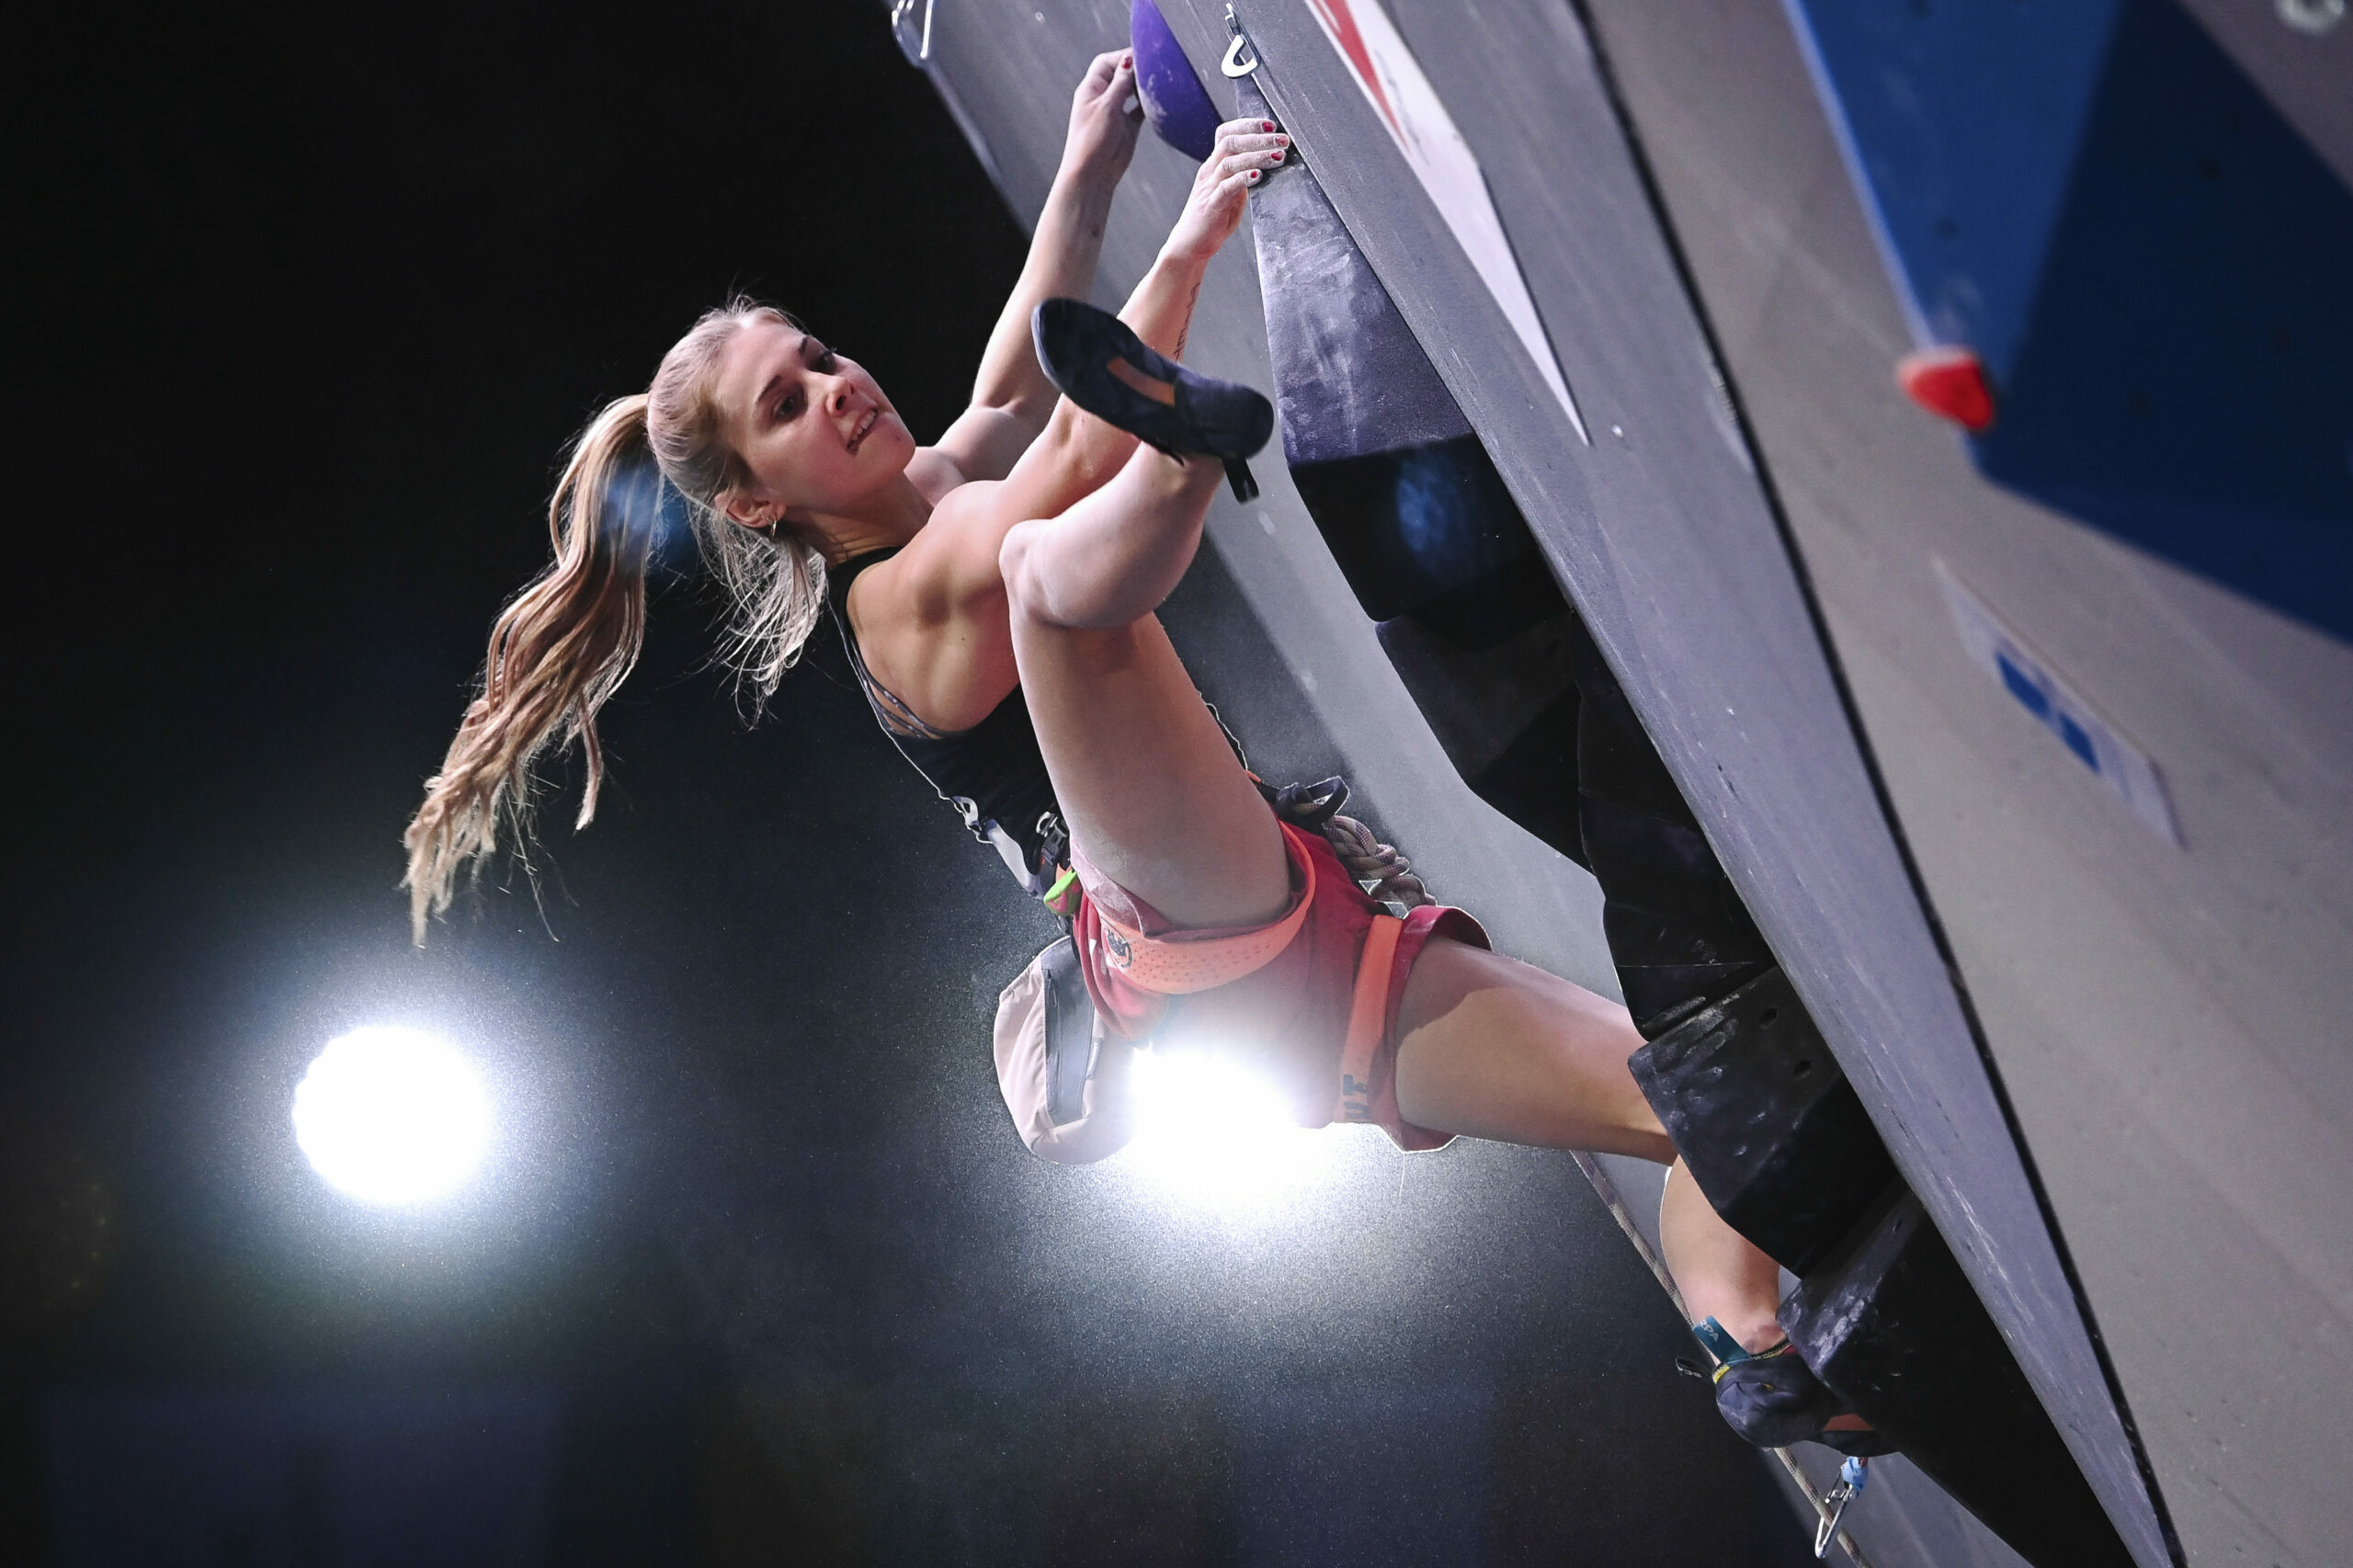 Russia Climbing Europe Championship 28.11.2020 Germany's Hannah Meul competes during the women's combined speed final stage at the Europe sport climbing championships, in Moscow, Russia. Grigory Sysoev / Sputnik